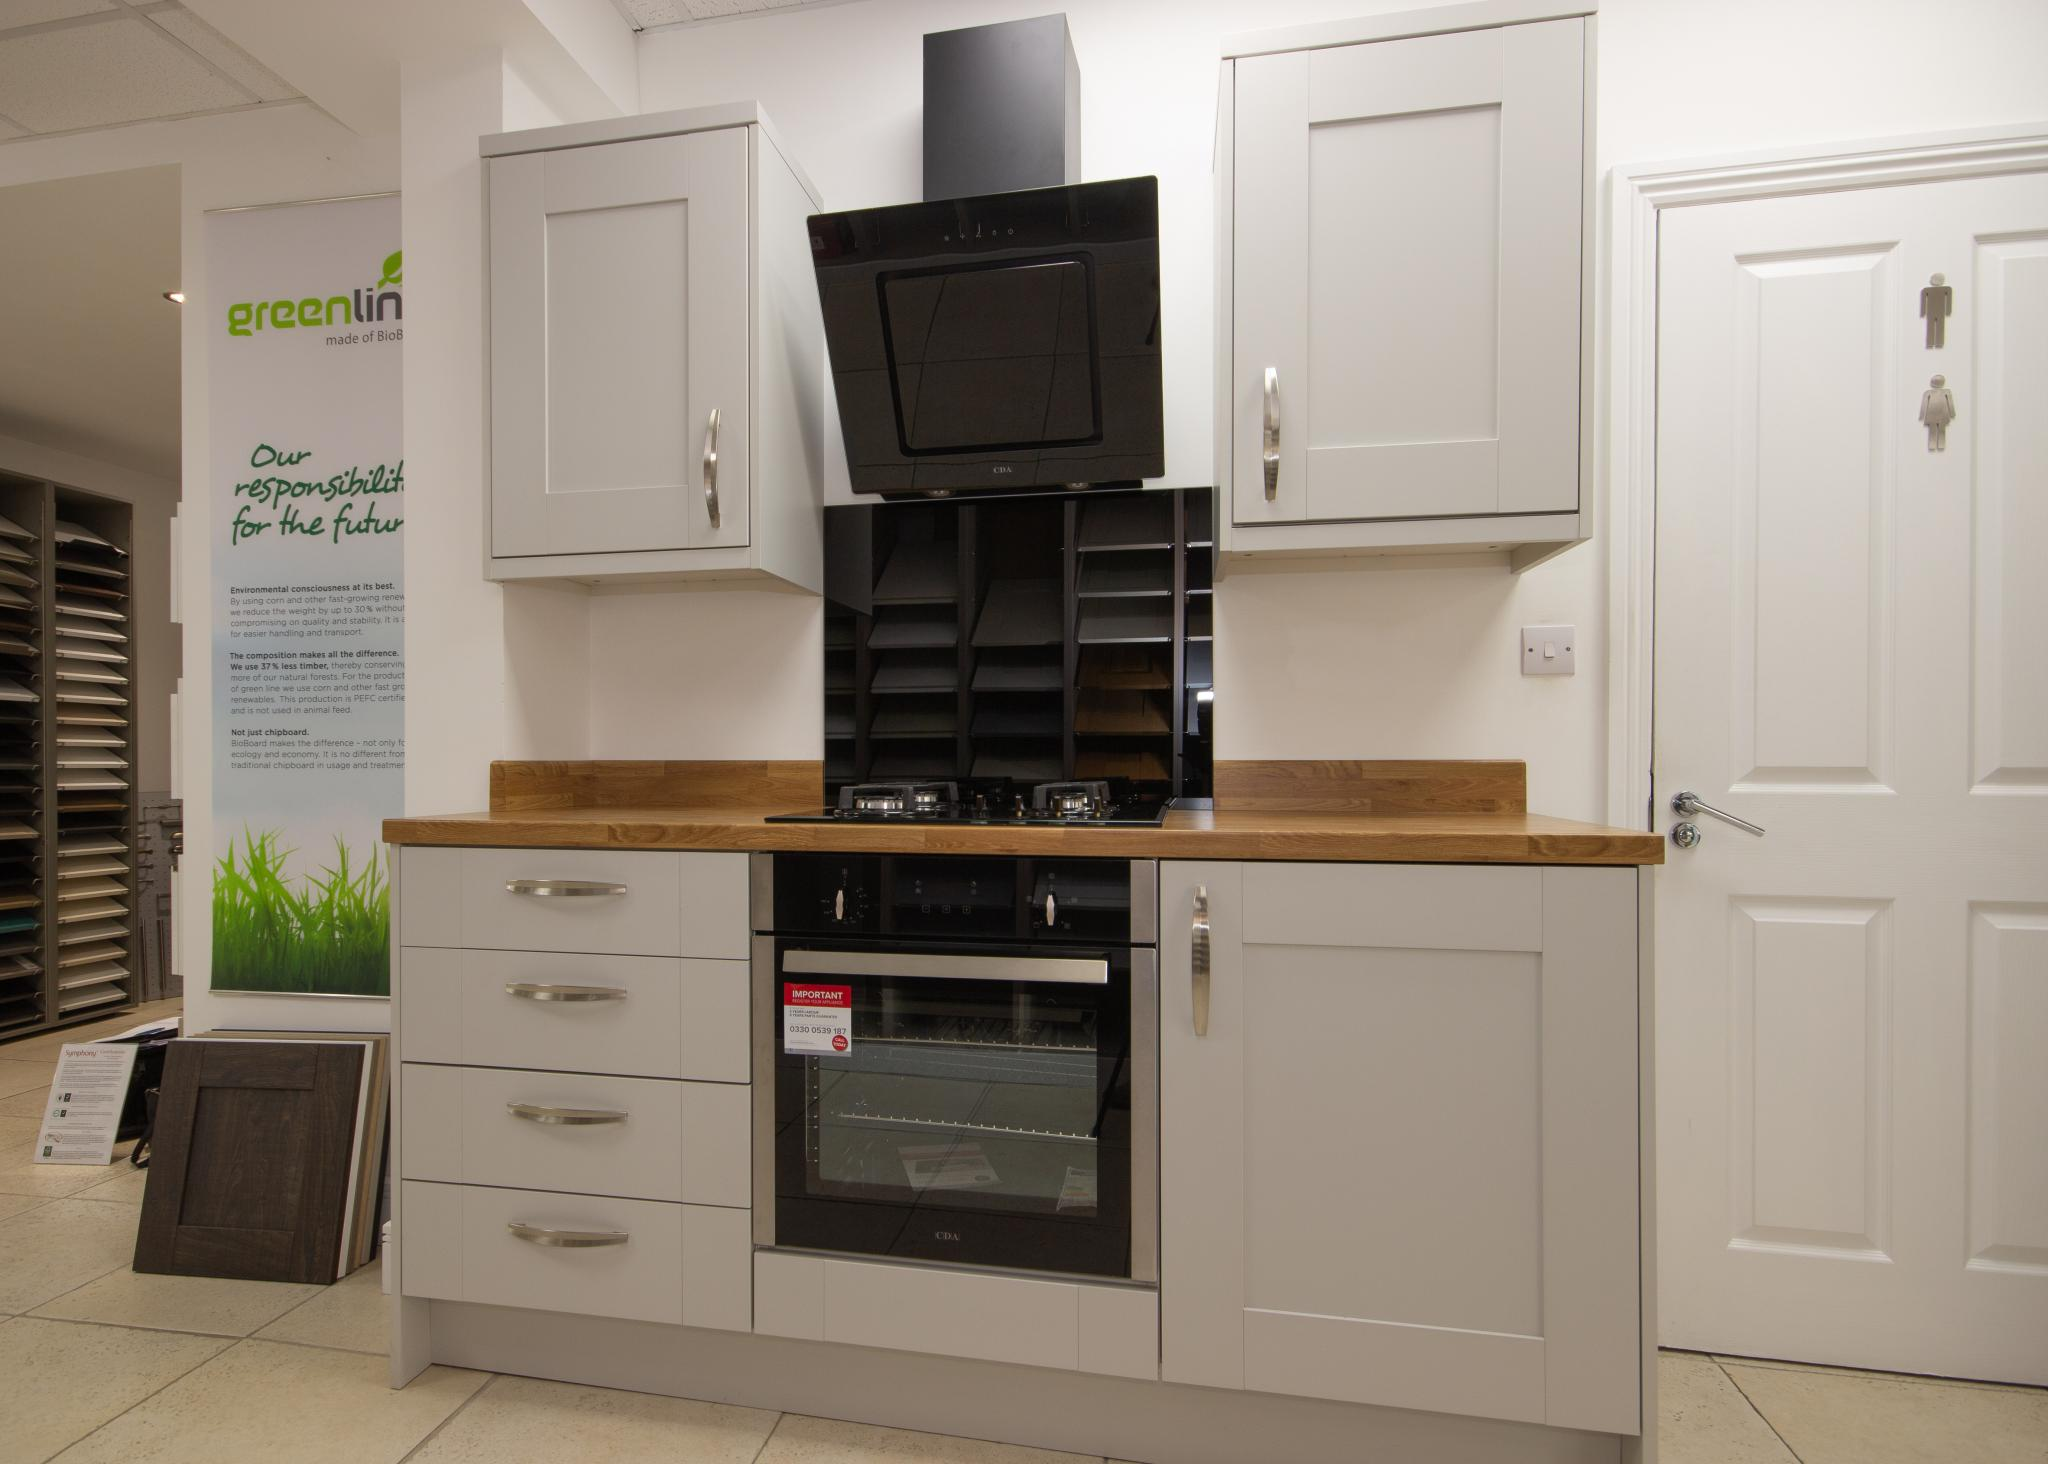 50 Off Rrp Gallery Cranbrook Platinum Ex Display Kitchen Units With Appliances Laminate Worktop Plymouth